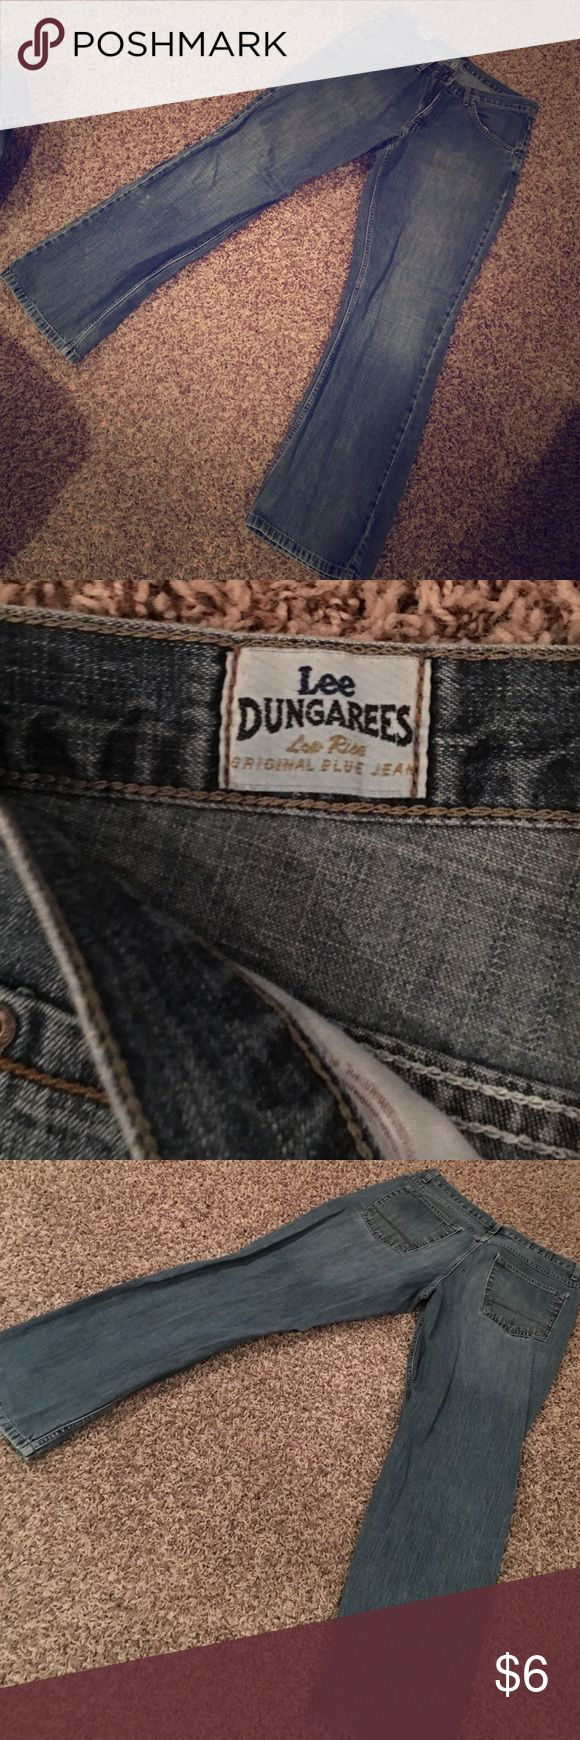 Mens Lee Dungarees Low Rise Original Blue Jean These Lees are in great condition. Size 32/32. Low Rise. The original blue jean Lee Jeans Bootcut